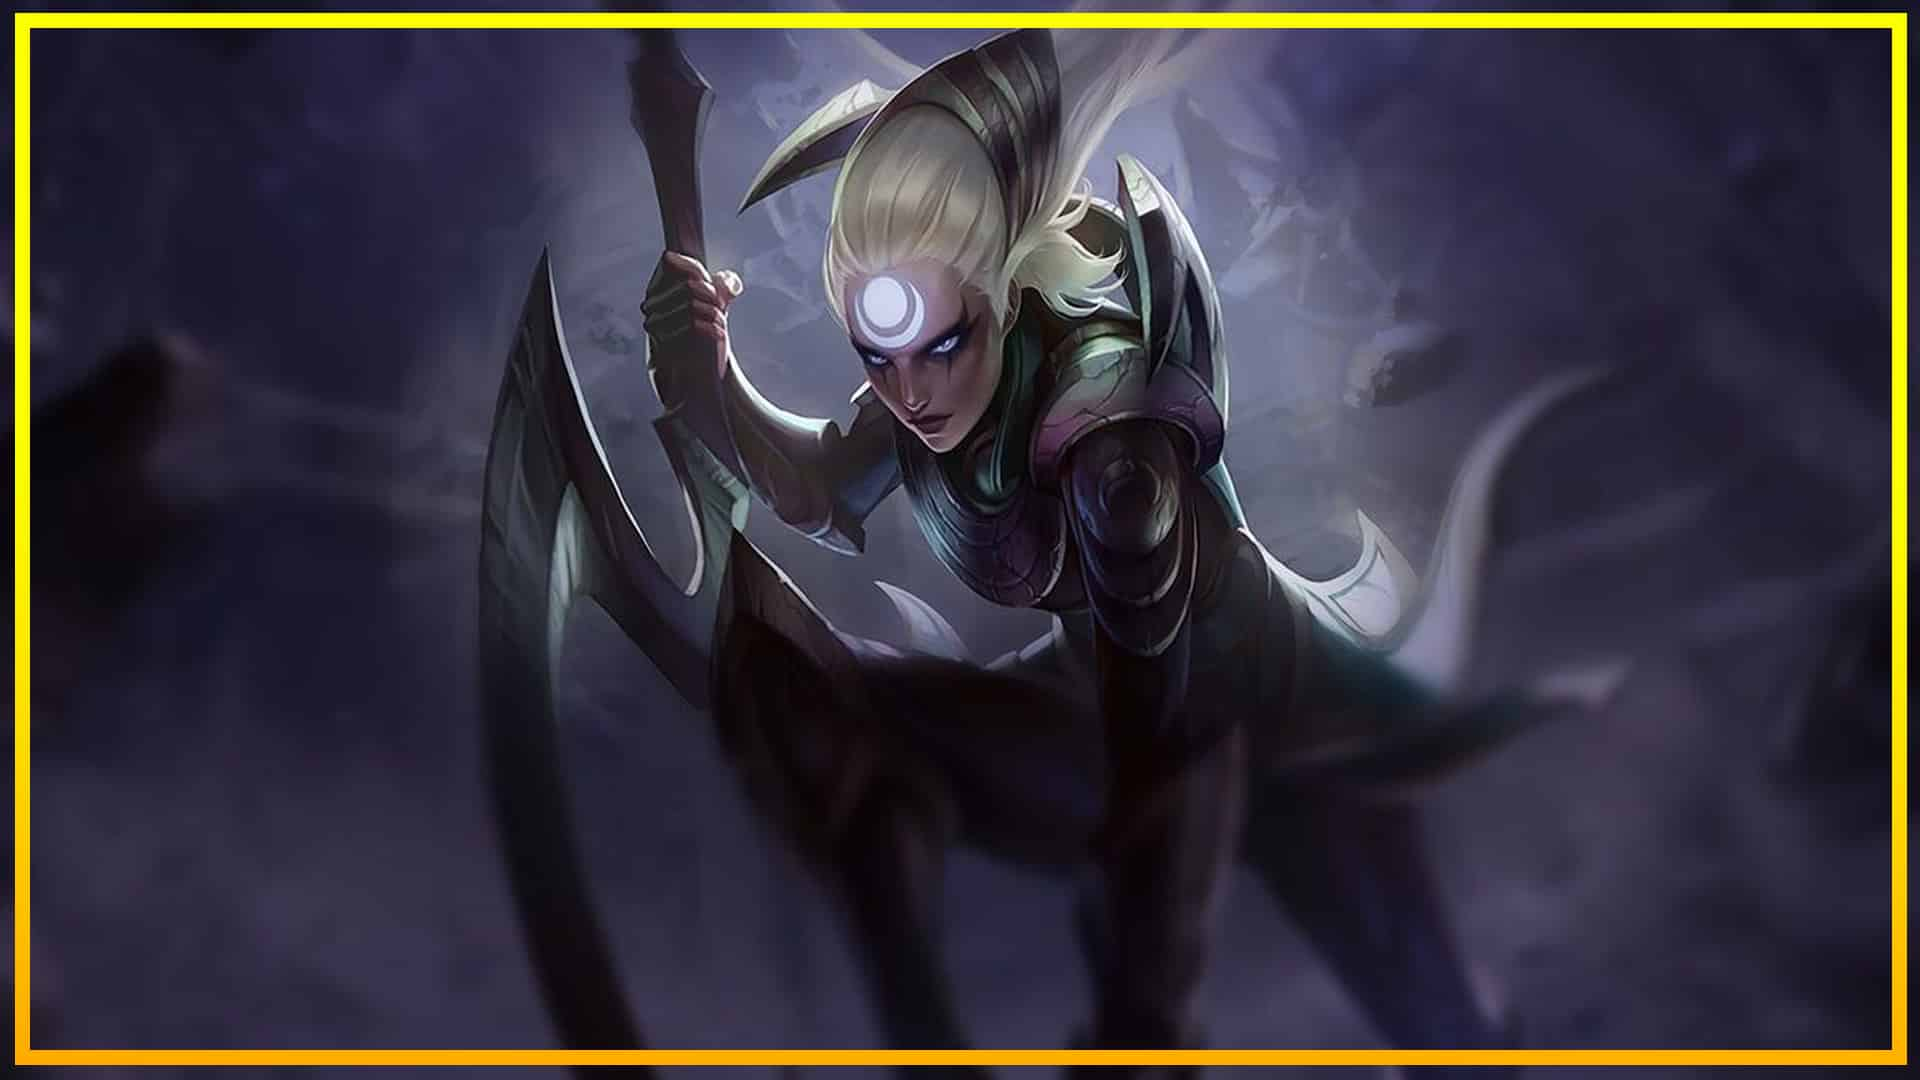 Progreso En La Actualización De Diana En League Of Legends